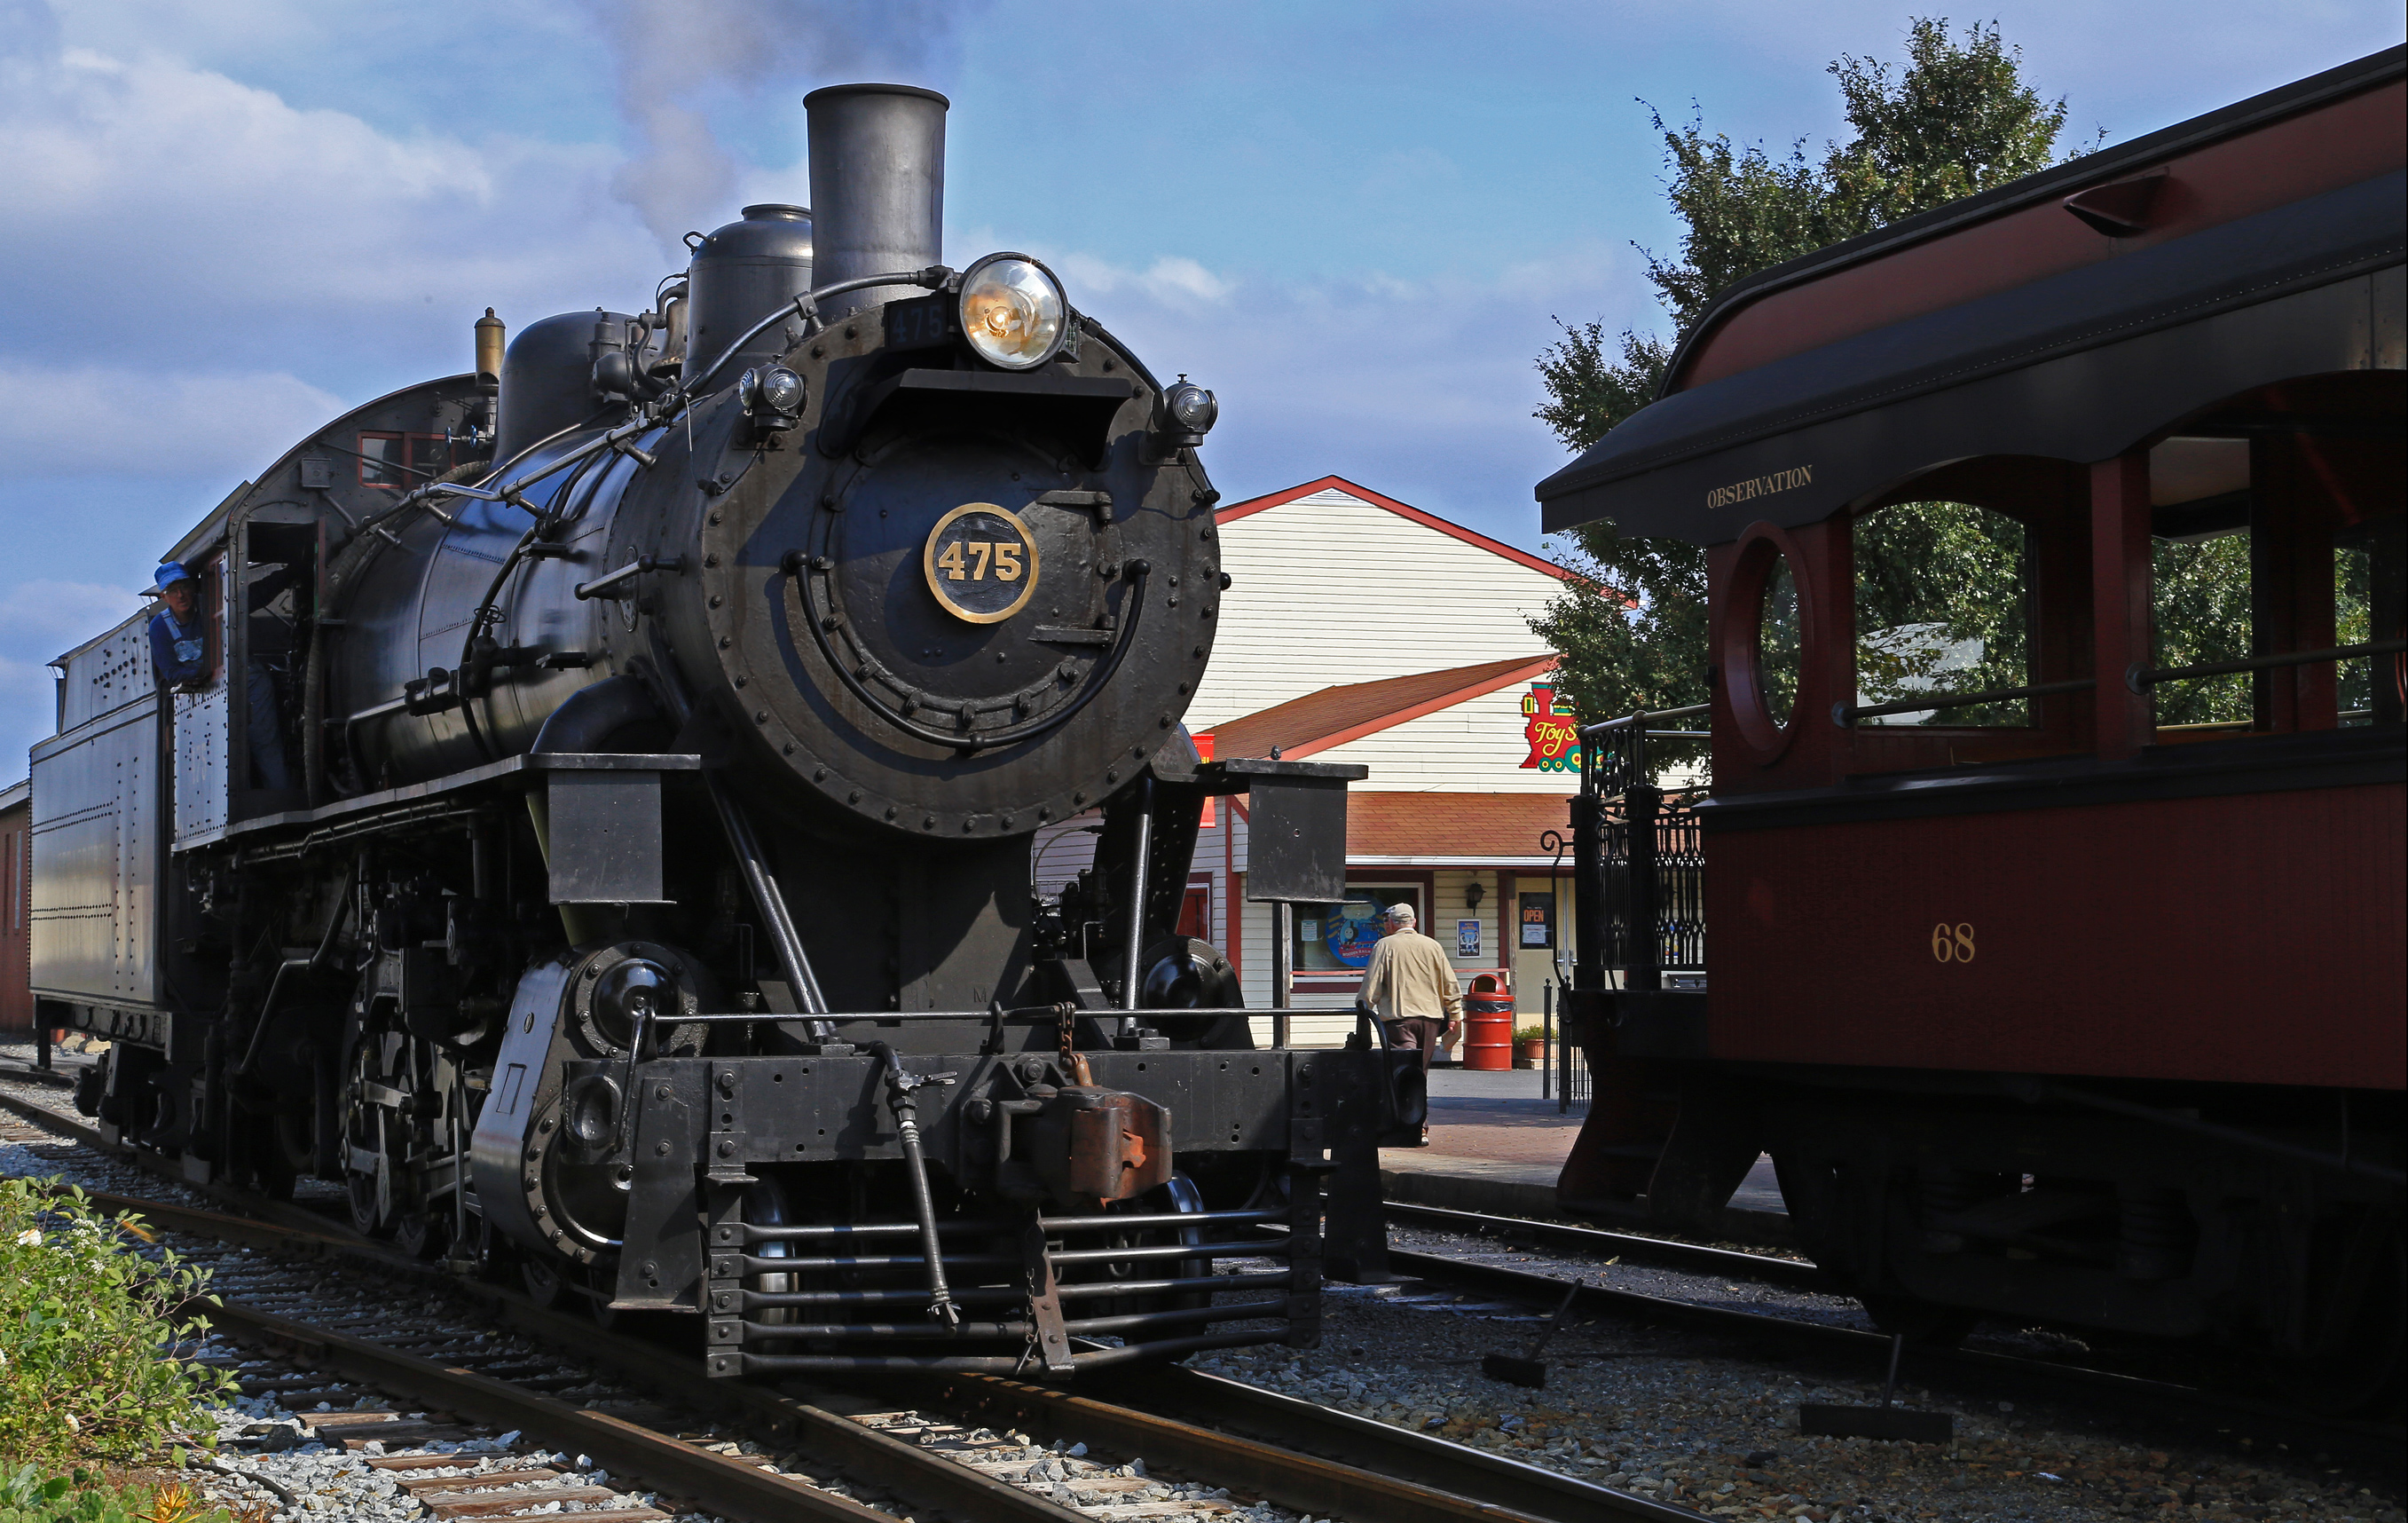 Strasburg (PA) United States  City pictures : USA – Pennsylvania – Strasburg Rail Road – Locomotive Number 475